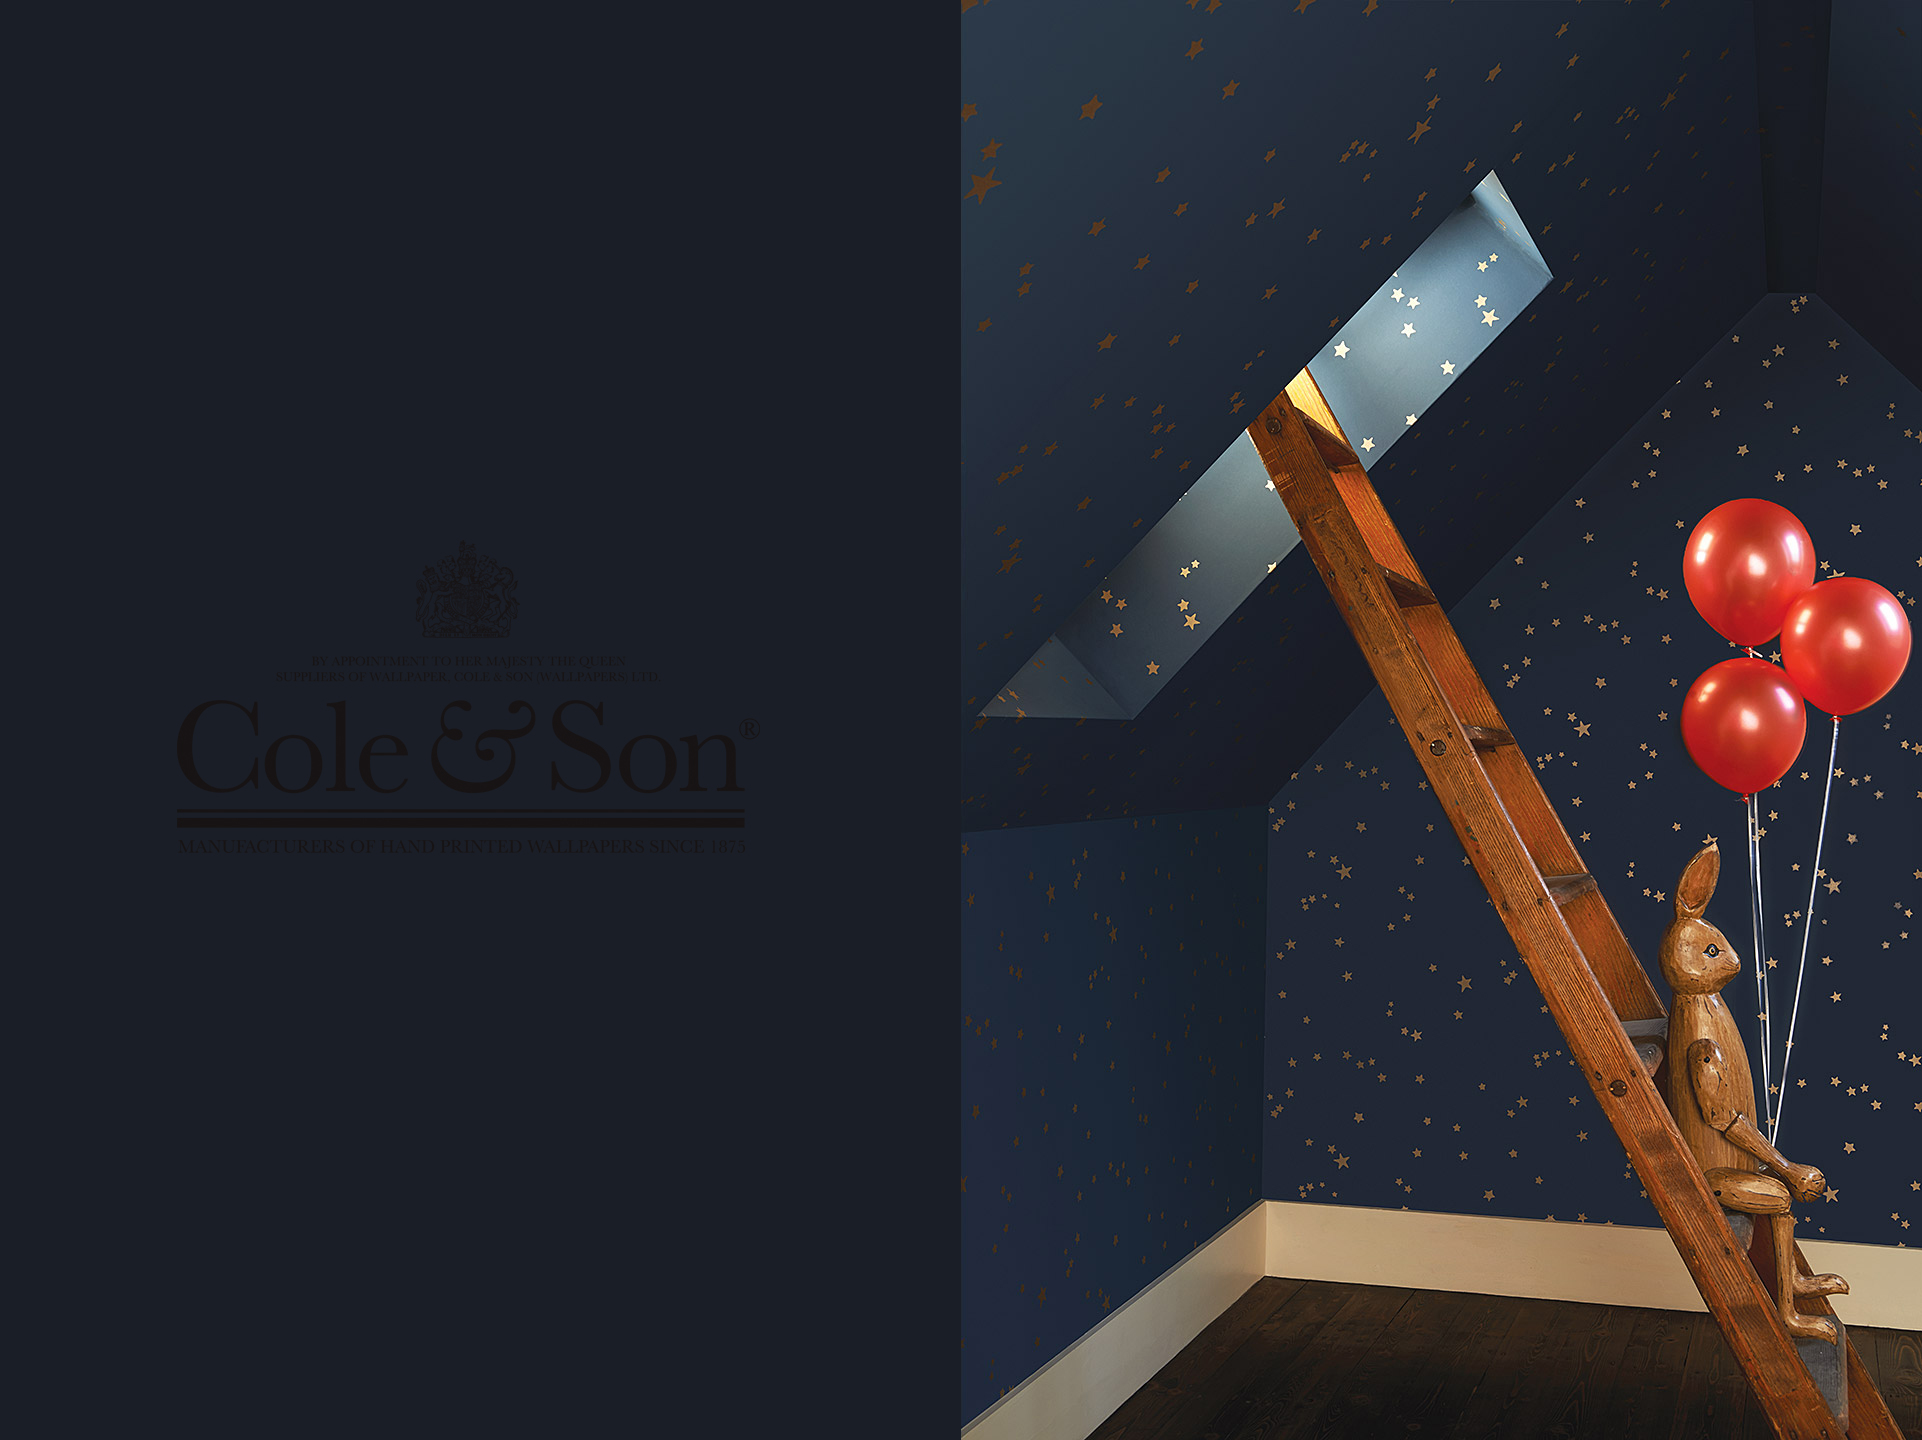 Mr Steel | Cole & Son Wallpapers